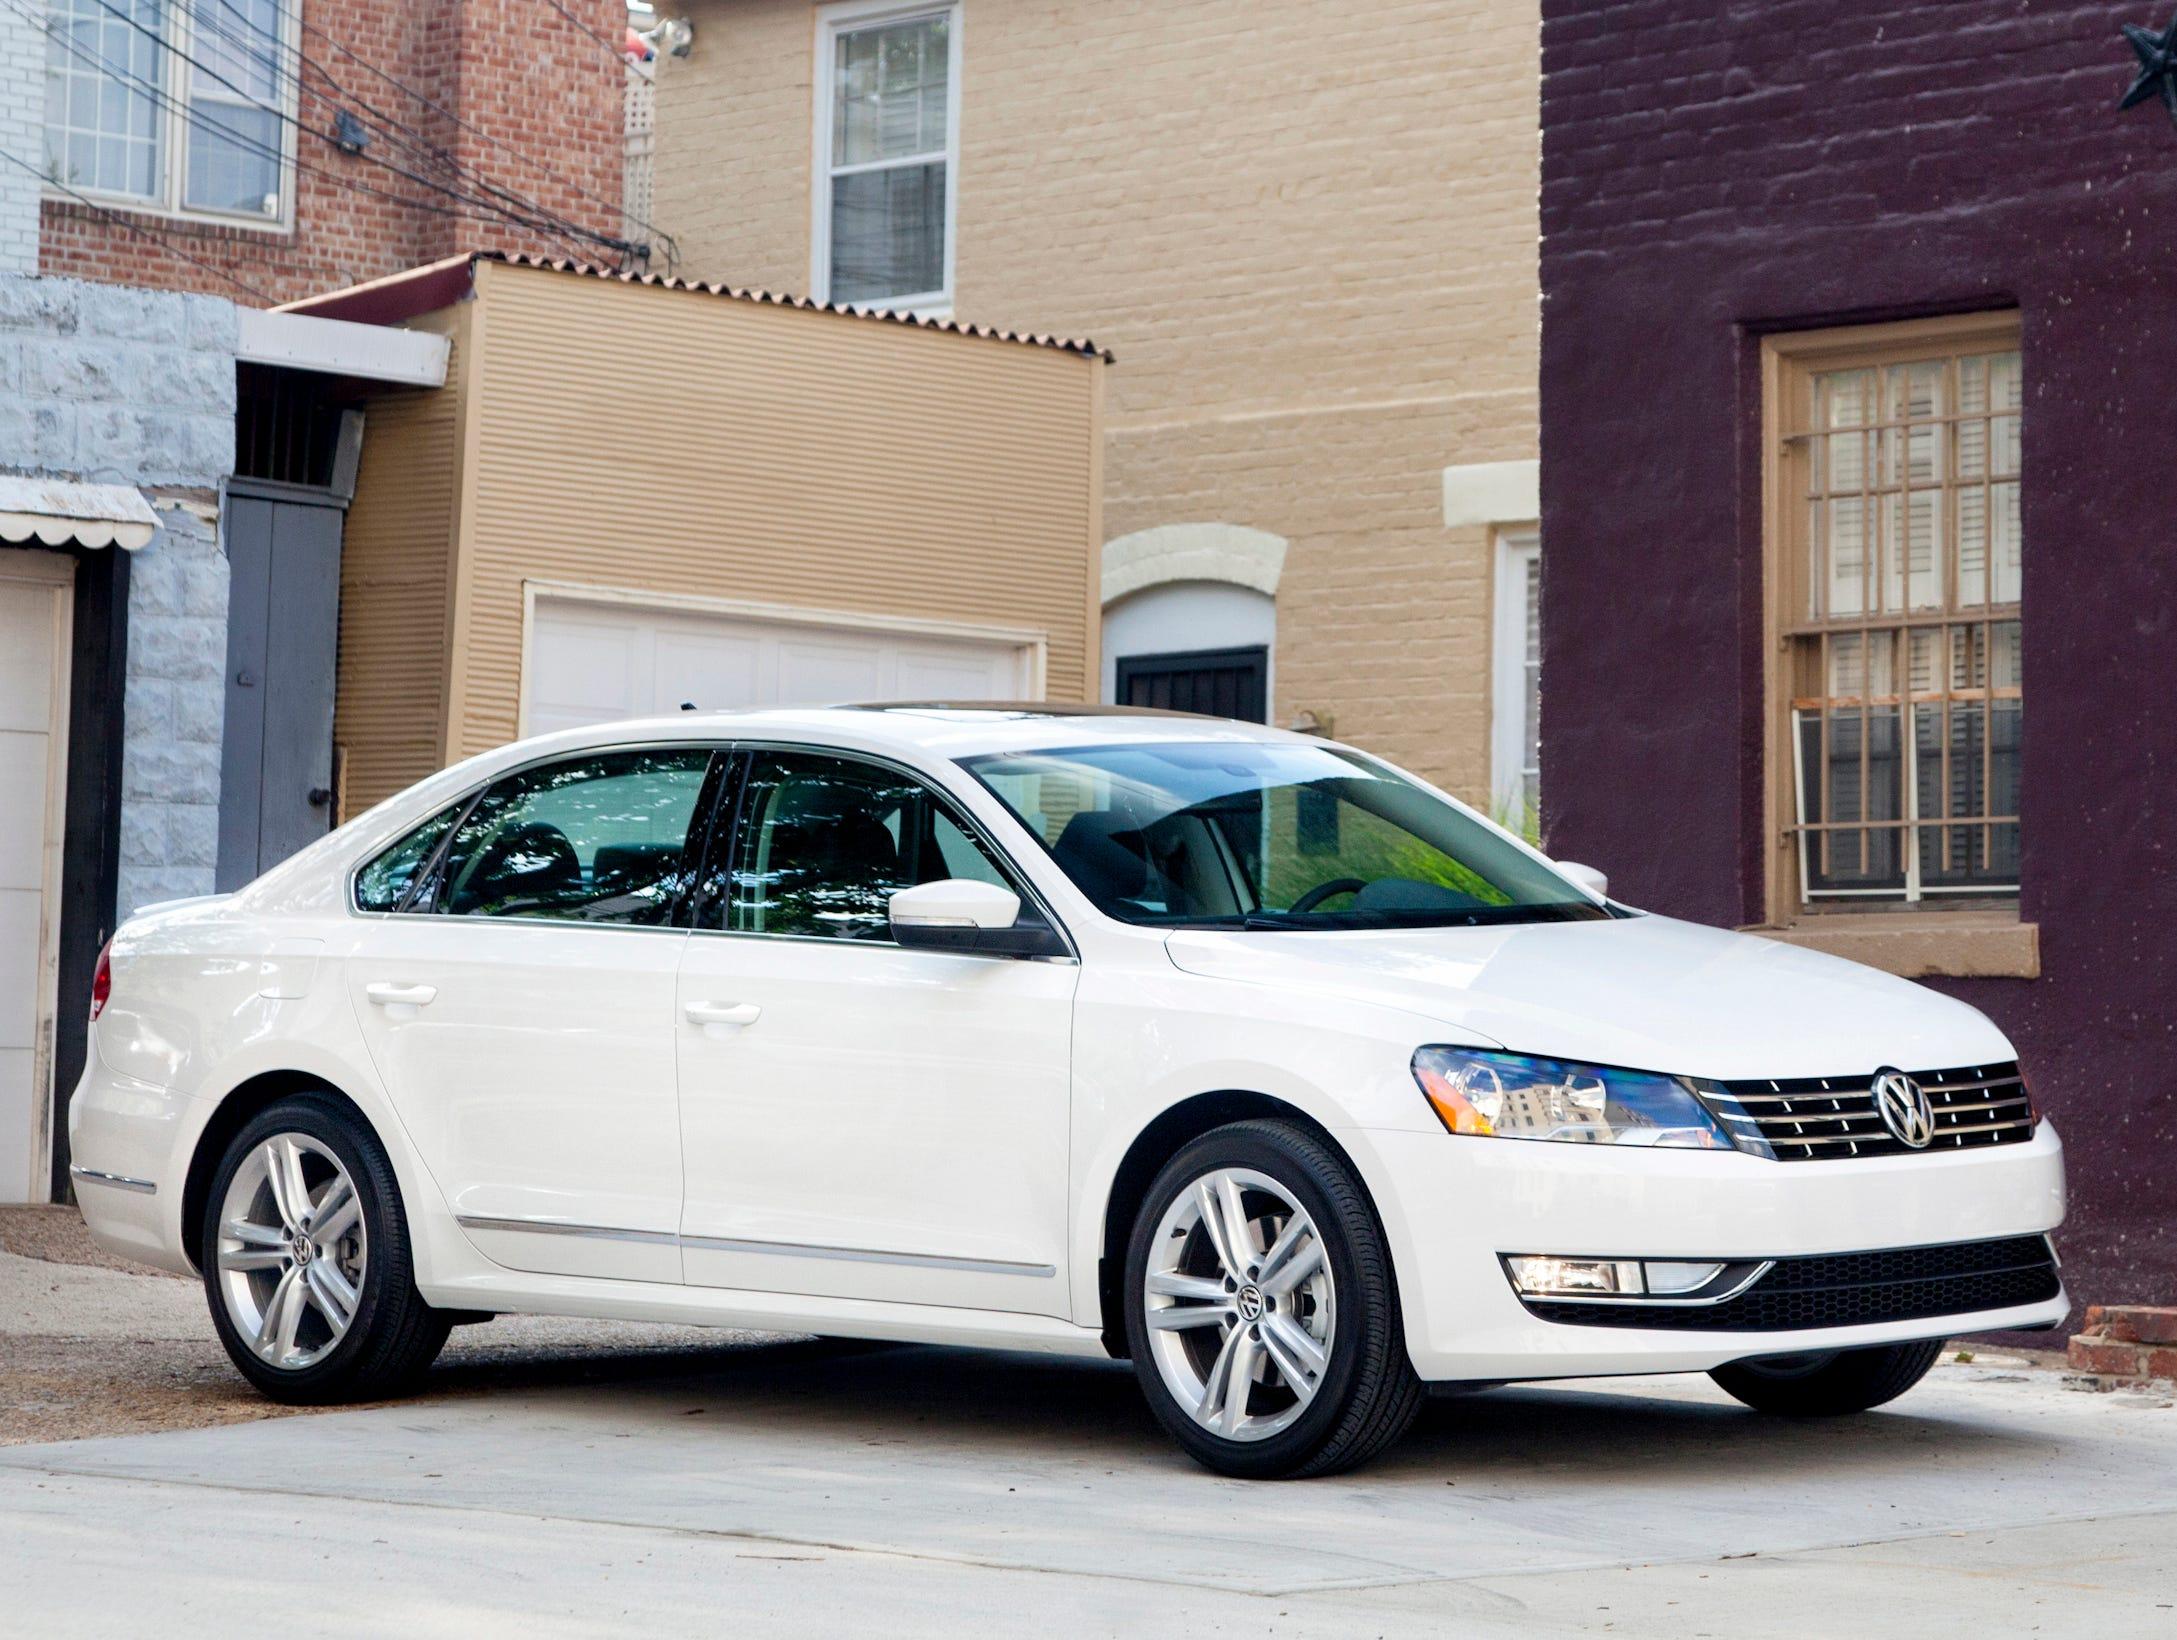 This year's Edmunds.com Top 10 Best Cars for Short Drivers includes the Volkswagen Passat sedan, starting at $21,640 (SEL diesel model shown here).